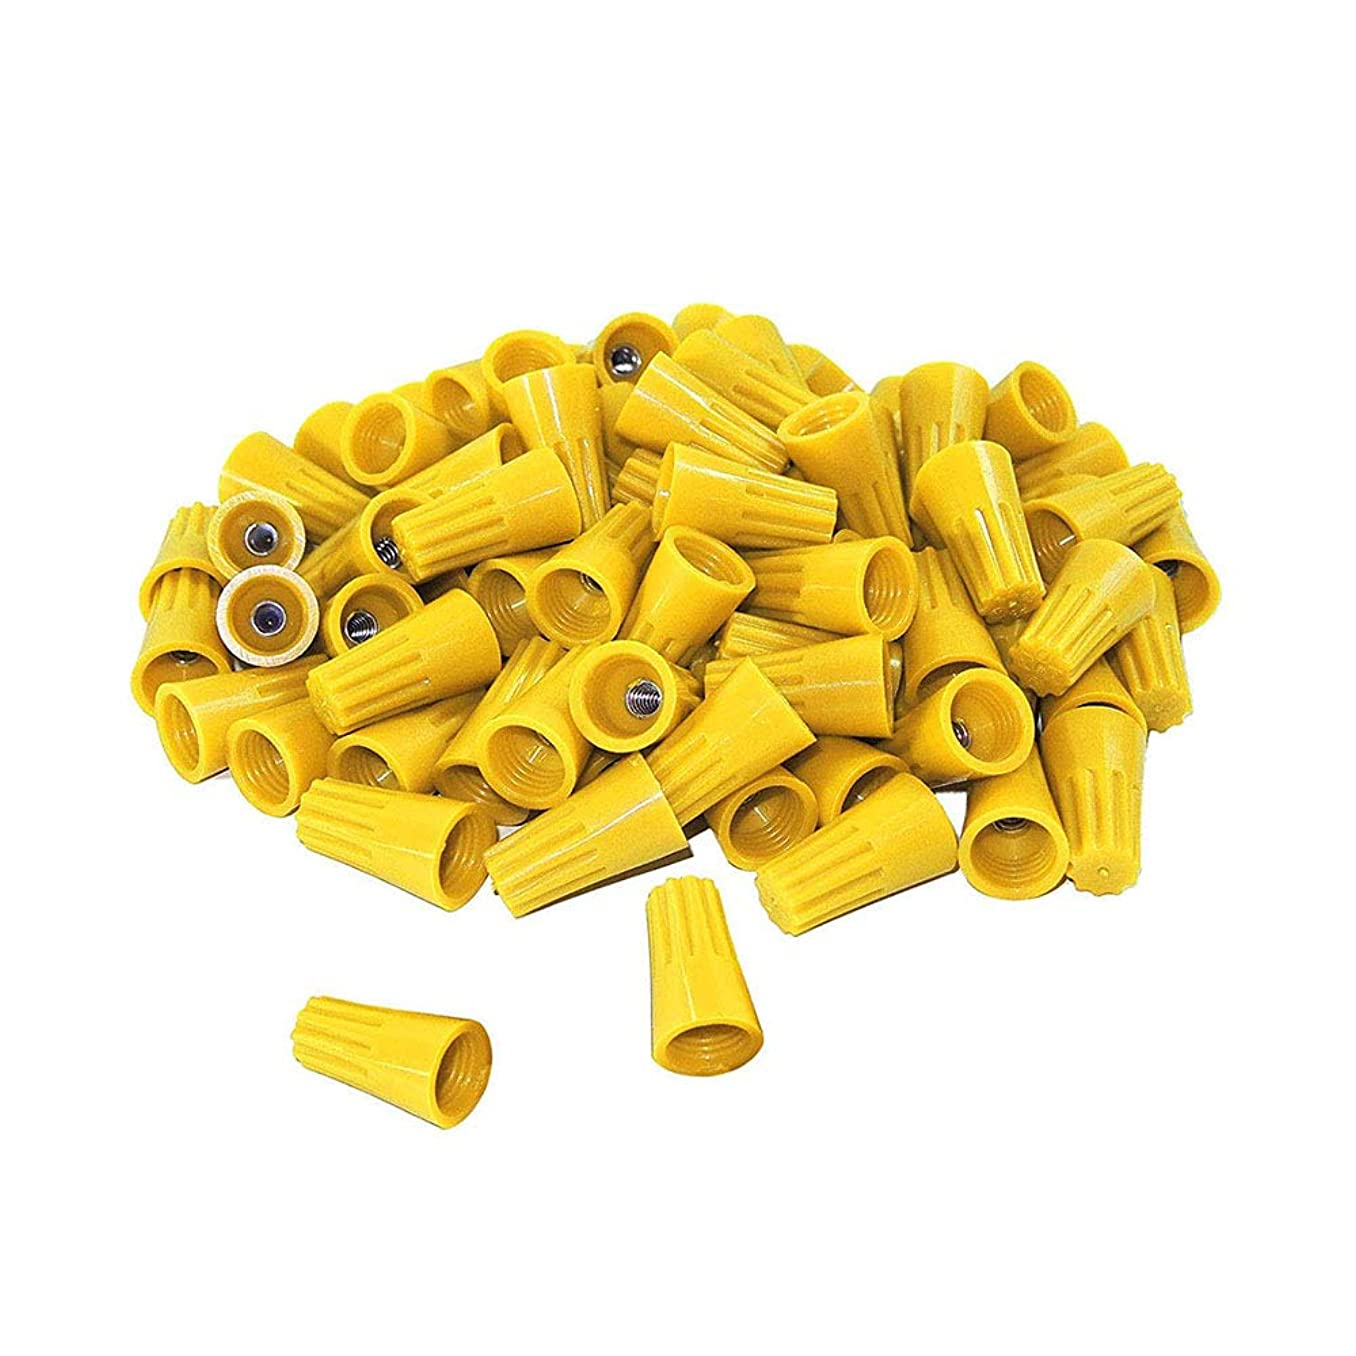 50Pcs twist on wire connectors - Yellow #14 - #16 AWG Wire nut Bulk with Spring inserted, easy Screw on electrical caps